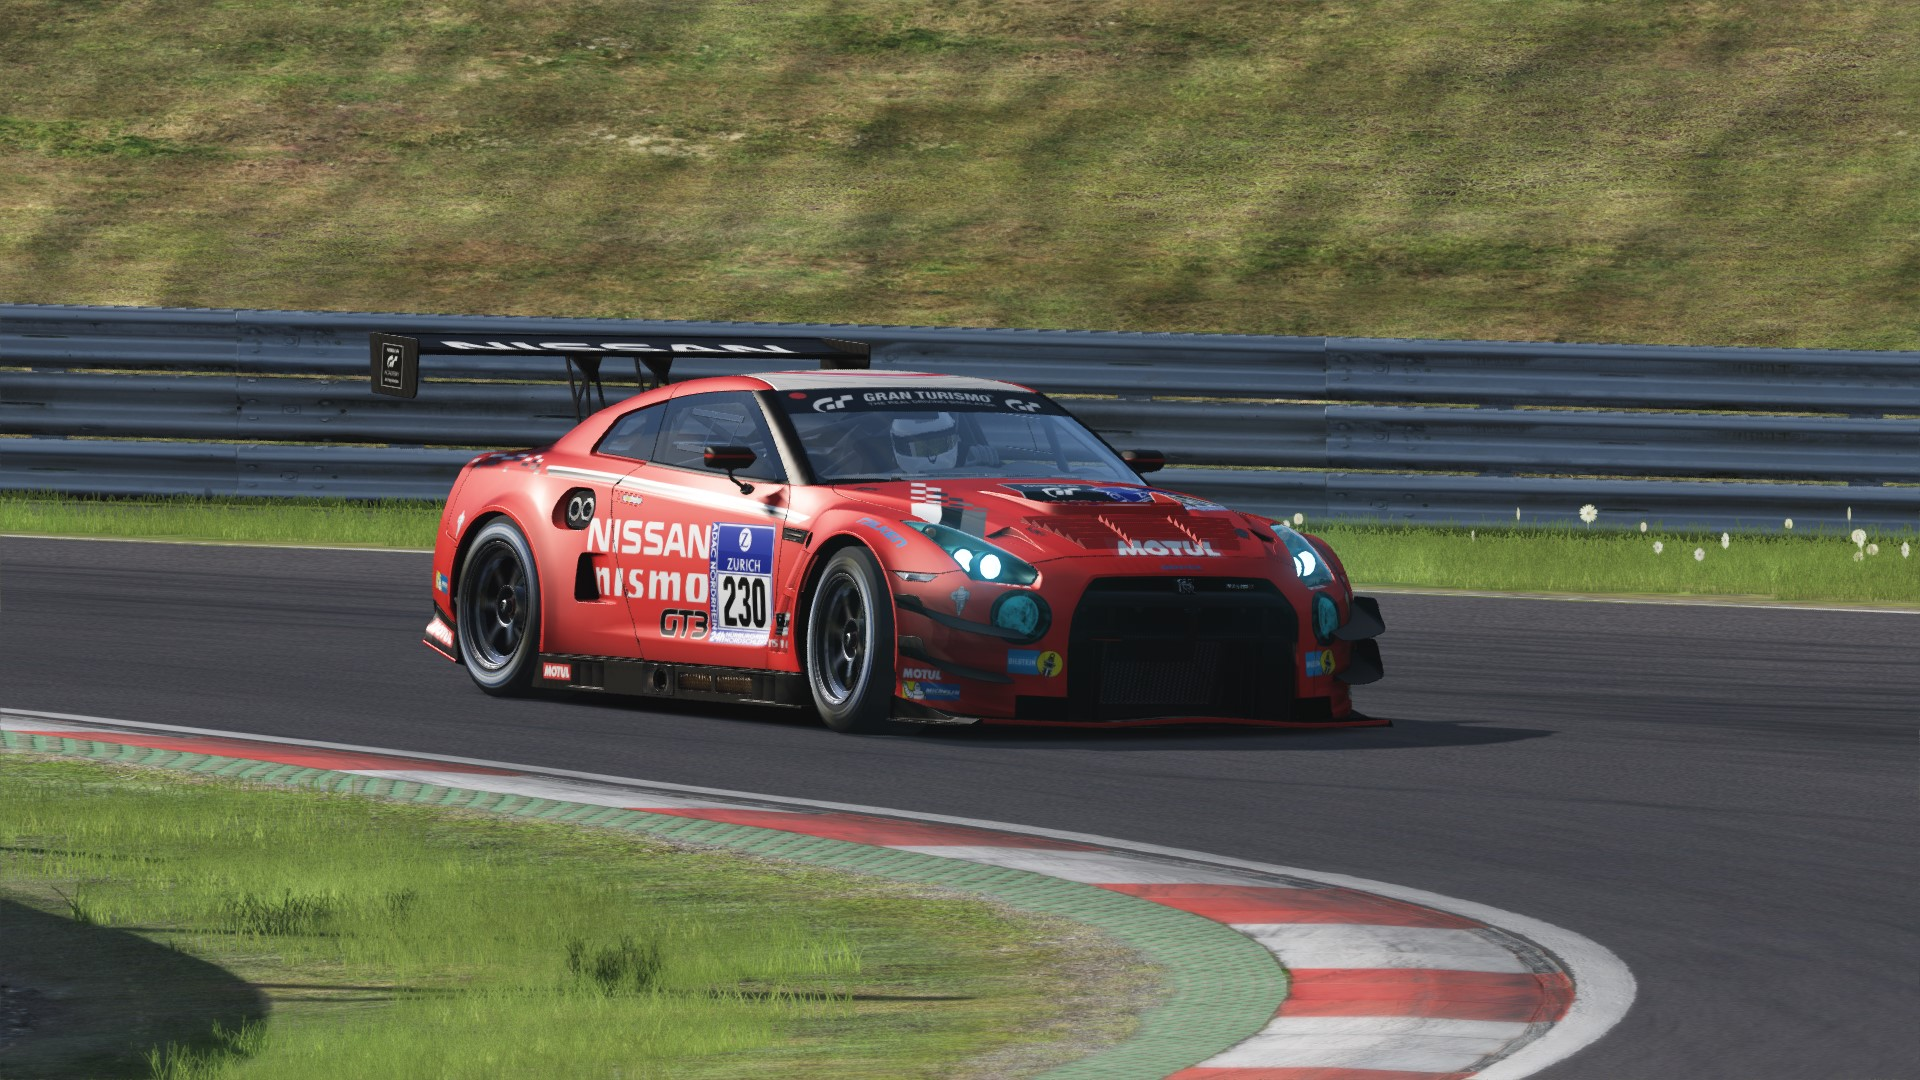 Screenshot_ks_nissan_gtr_gt3_ks_red_bull_ring_2-8-116-0-46-7.jpg